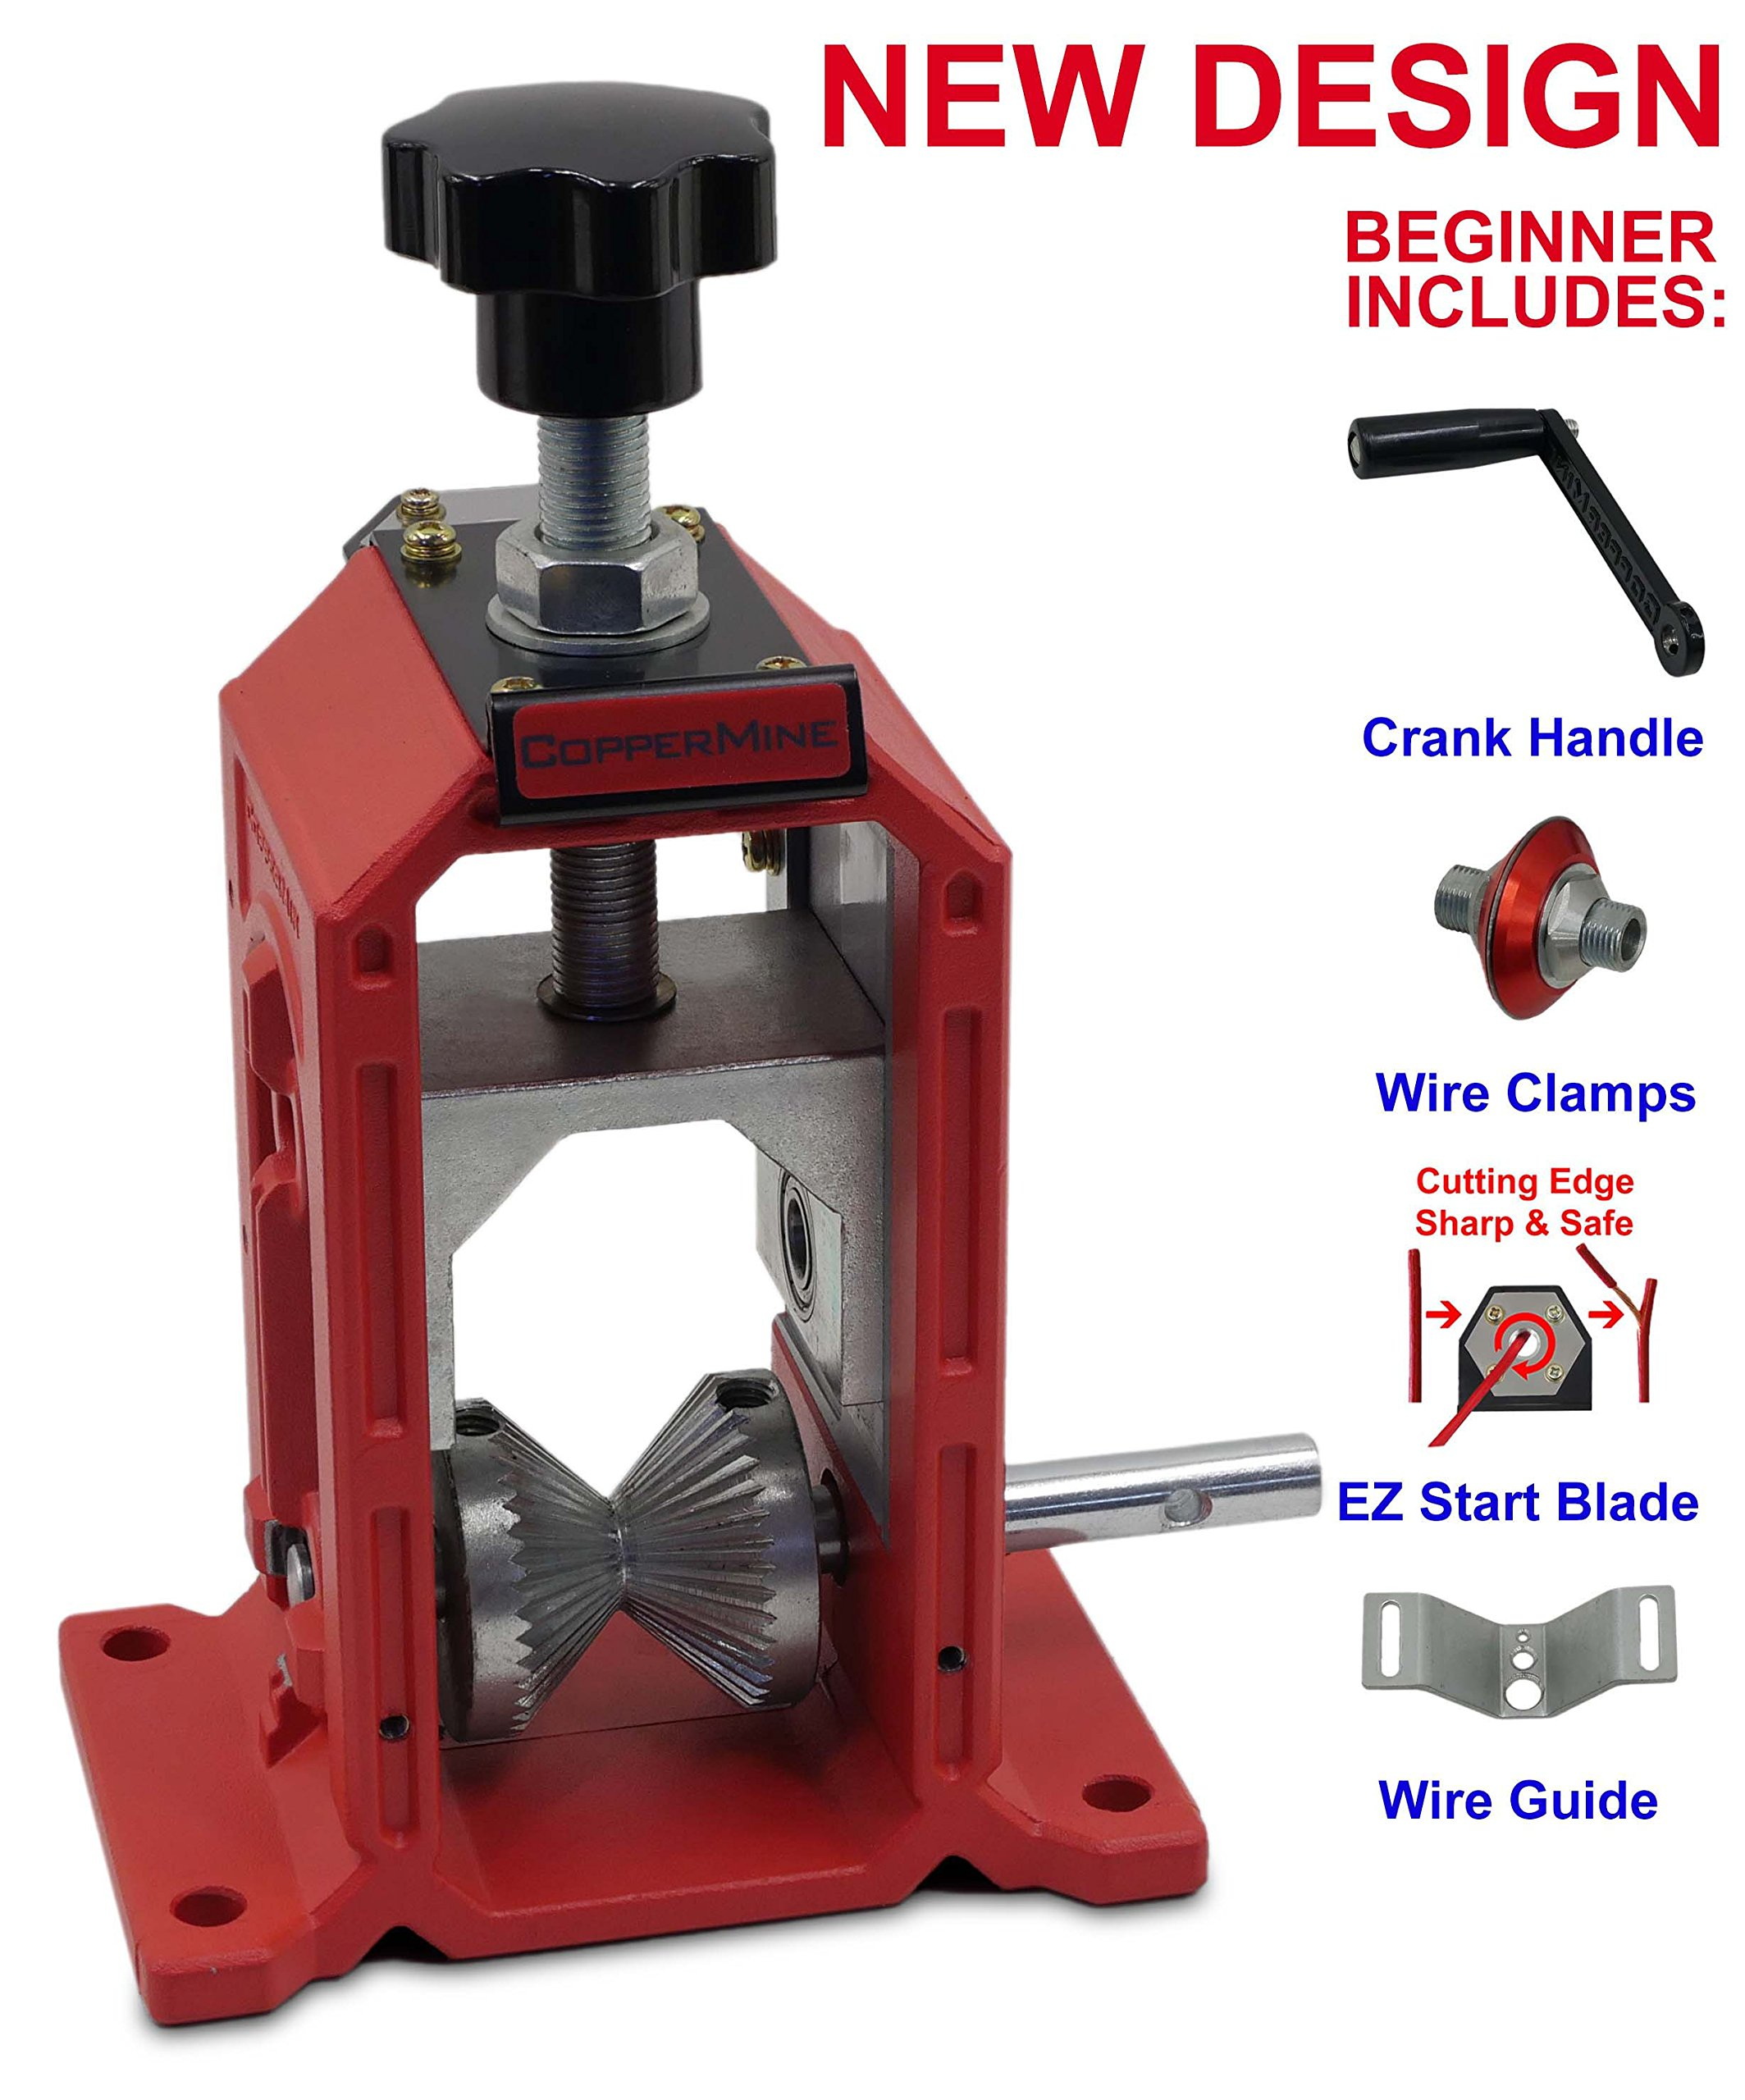 New Manual Copper Wire Stripping Machine Cable Wire Stripper Hand Crank Operated by CopperMine